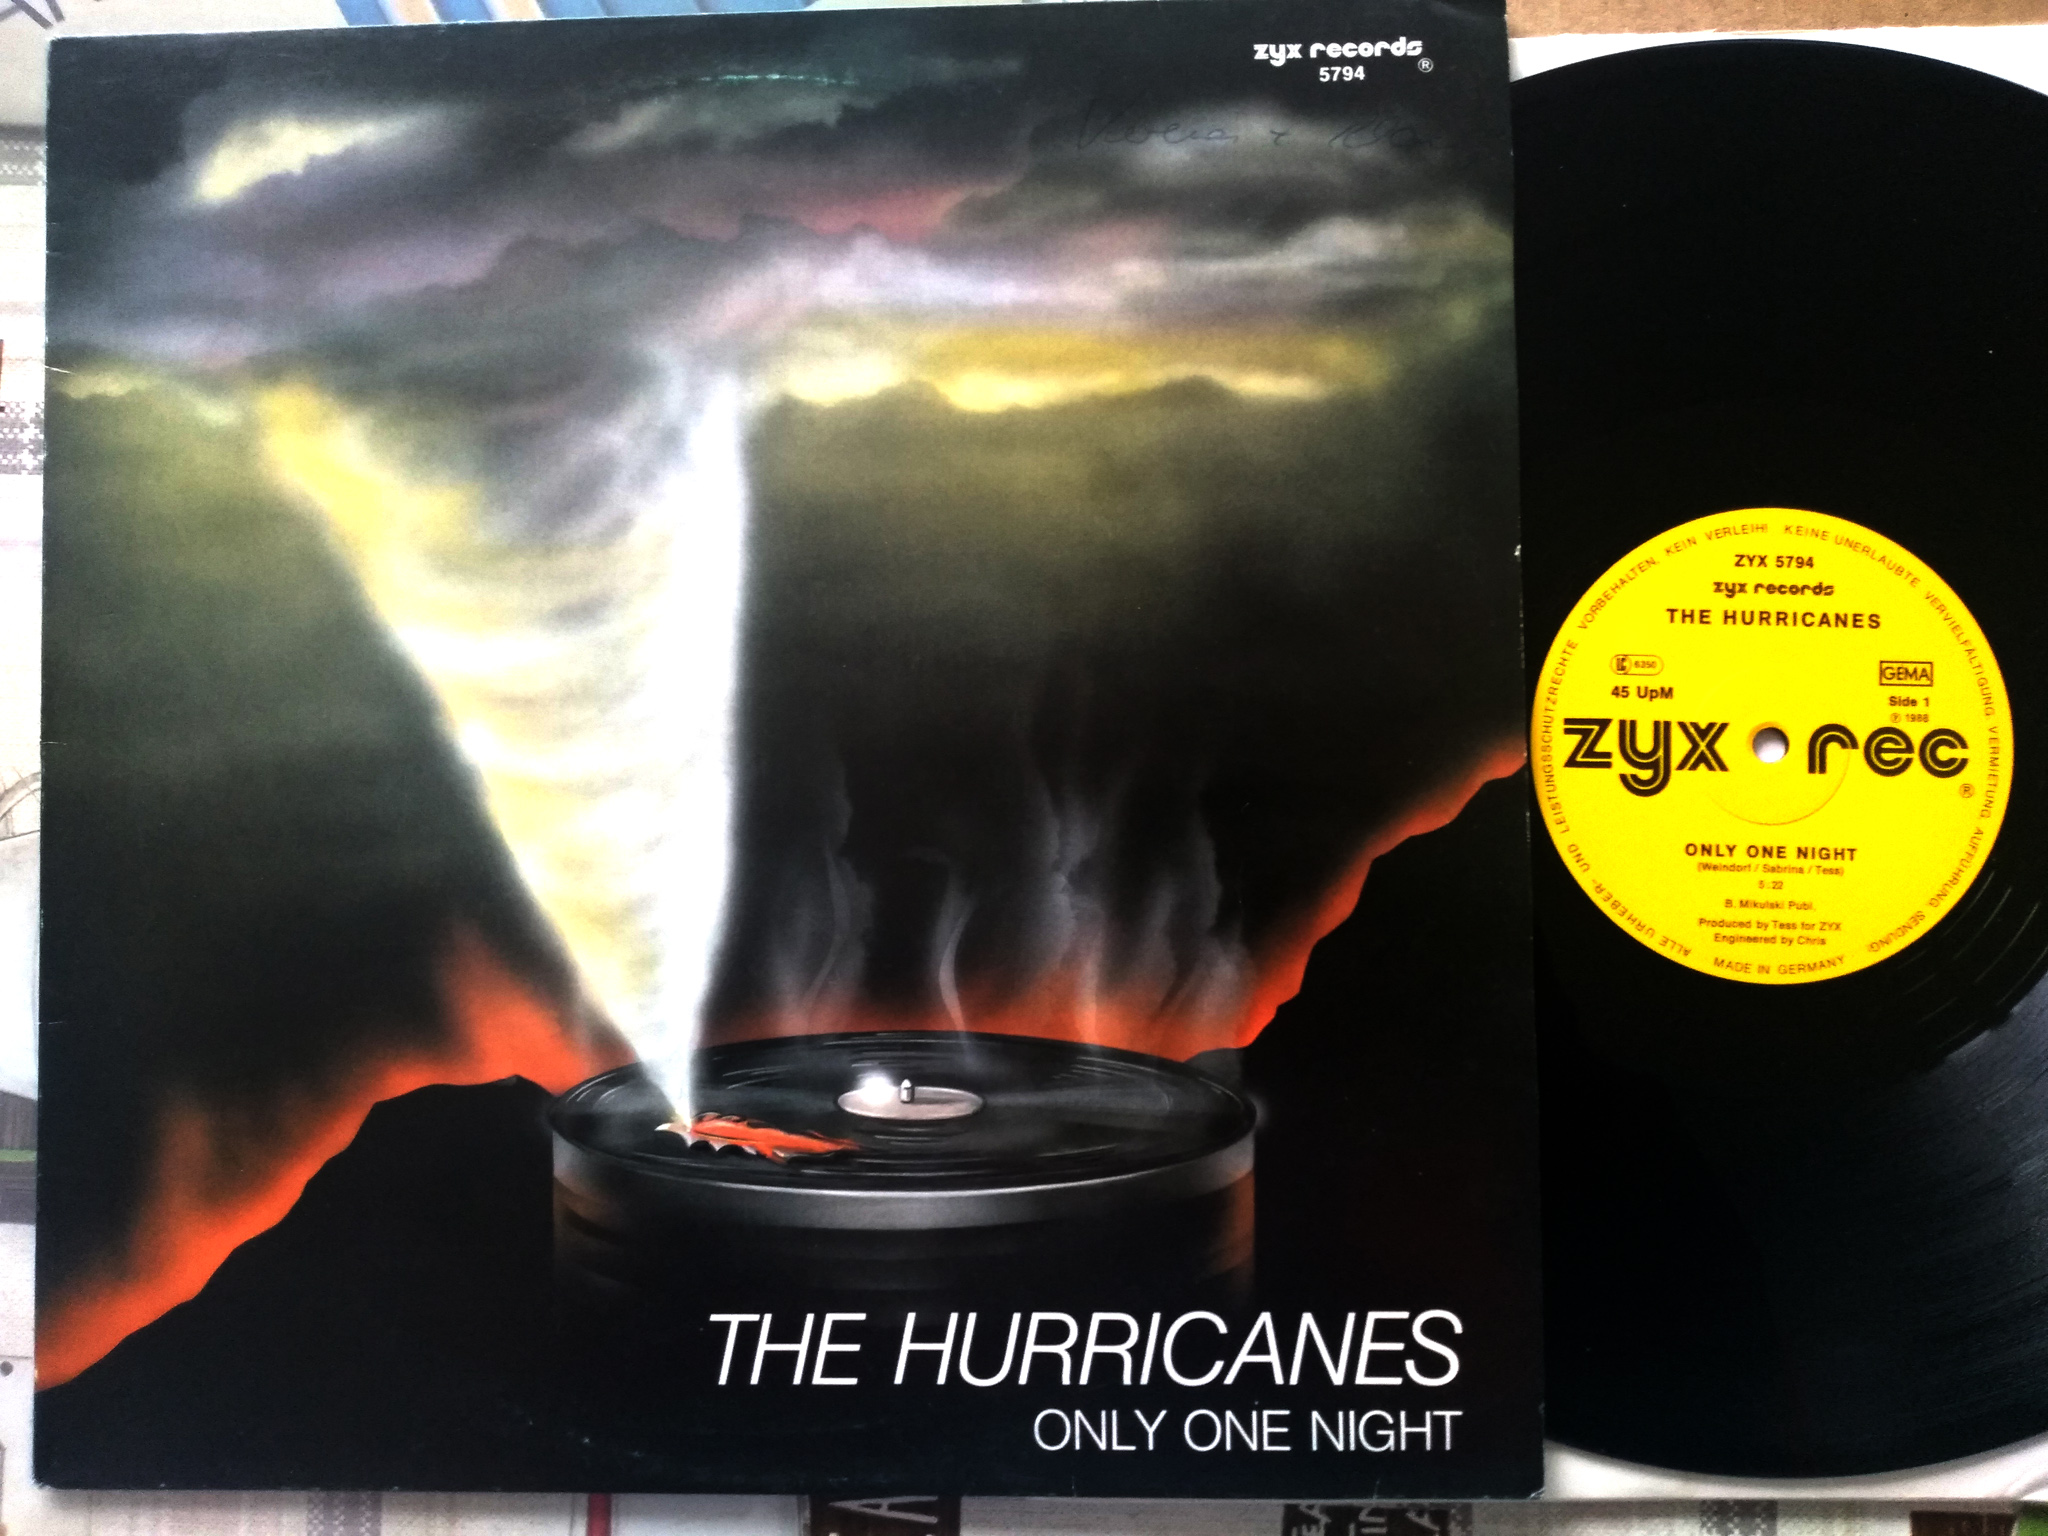 The Hurricanes - Only One Nght